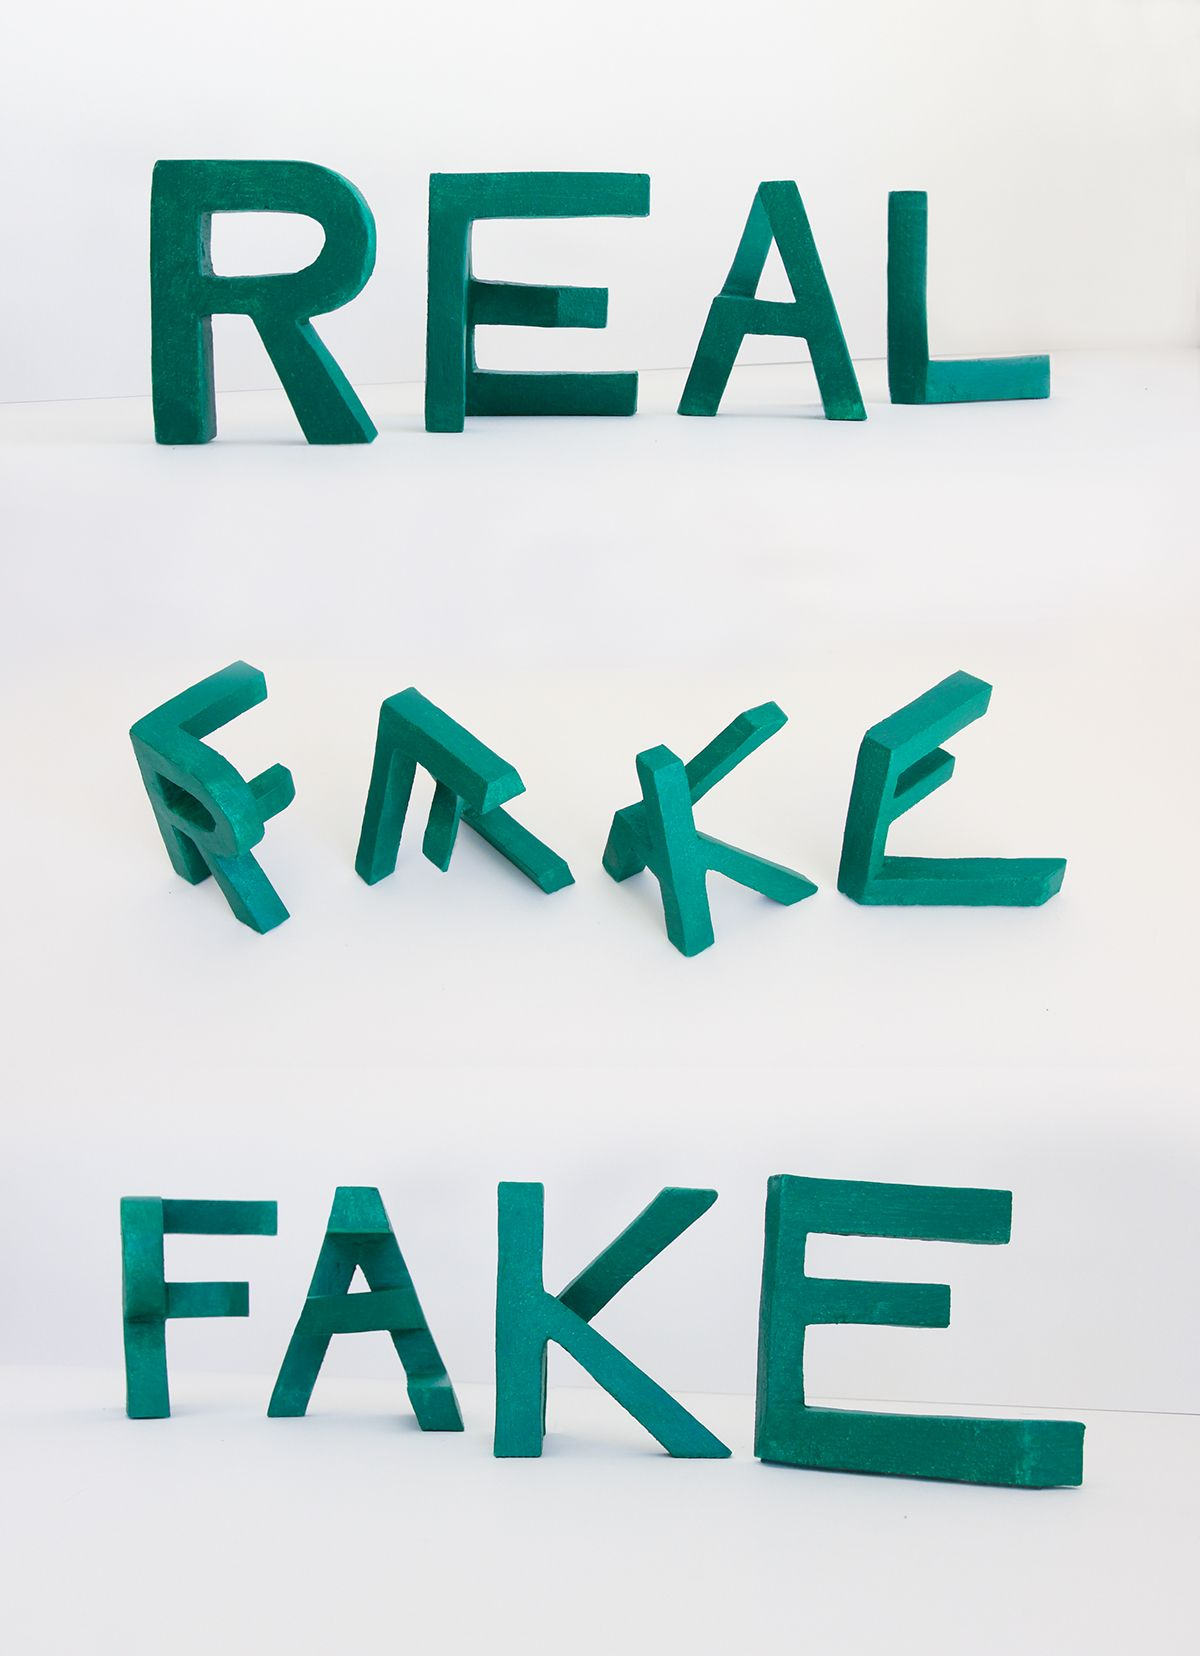 Very Cool But The Form Of Letters Doesnt Convey Real And Fake I Think In This Chaos Order Example Works Better